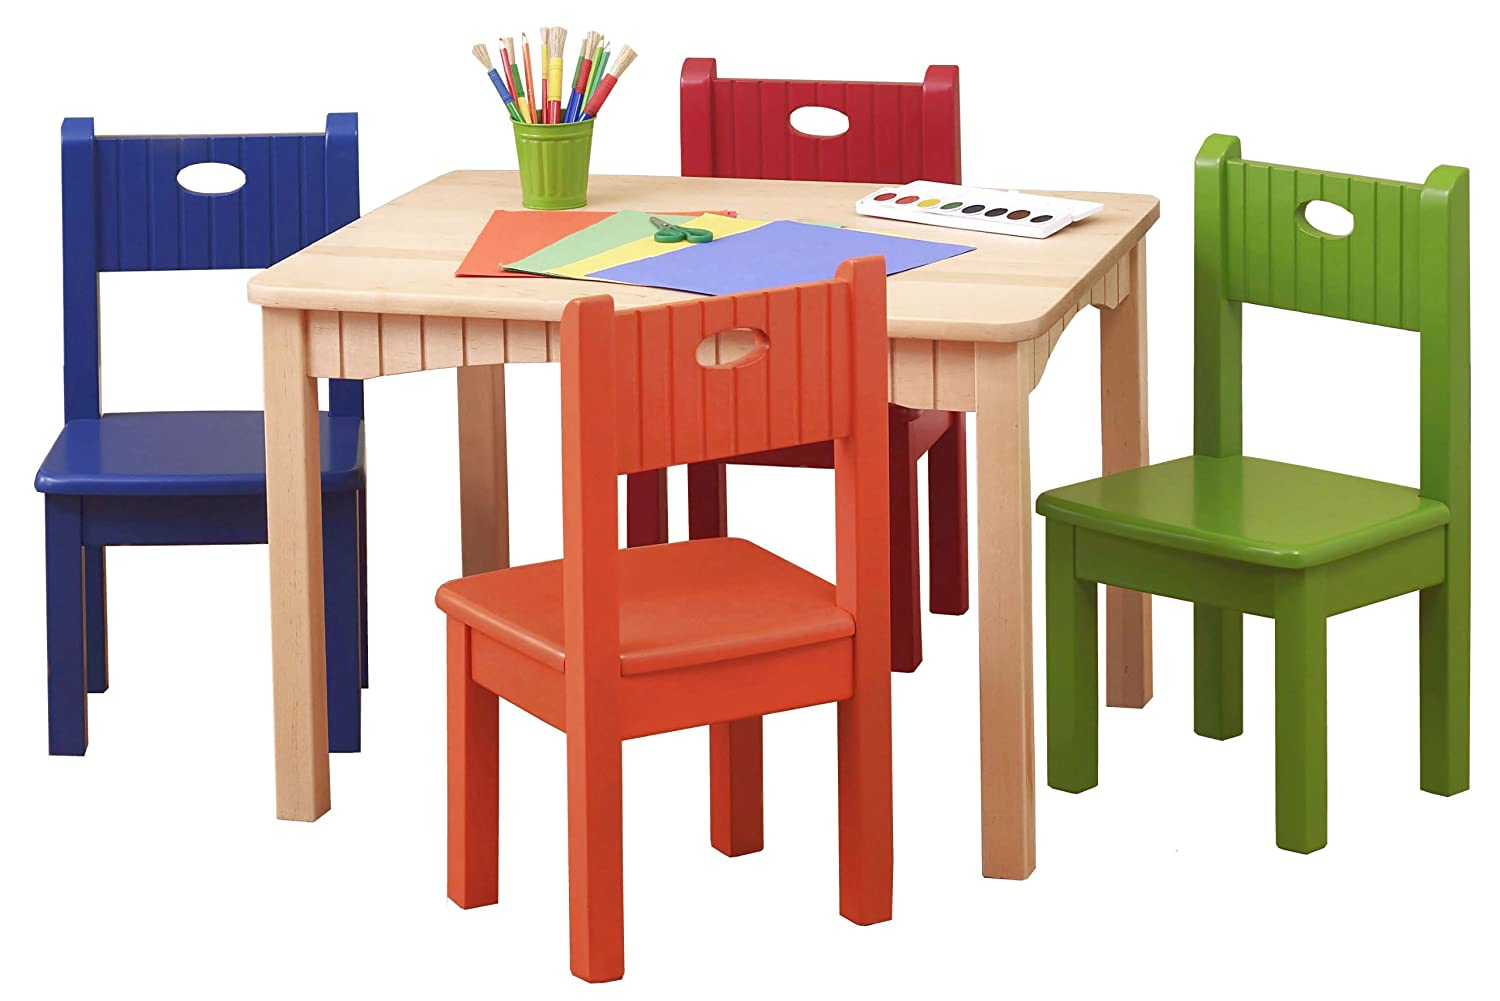 Pics s Kids Wood Table And Chairs